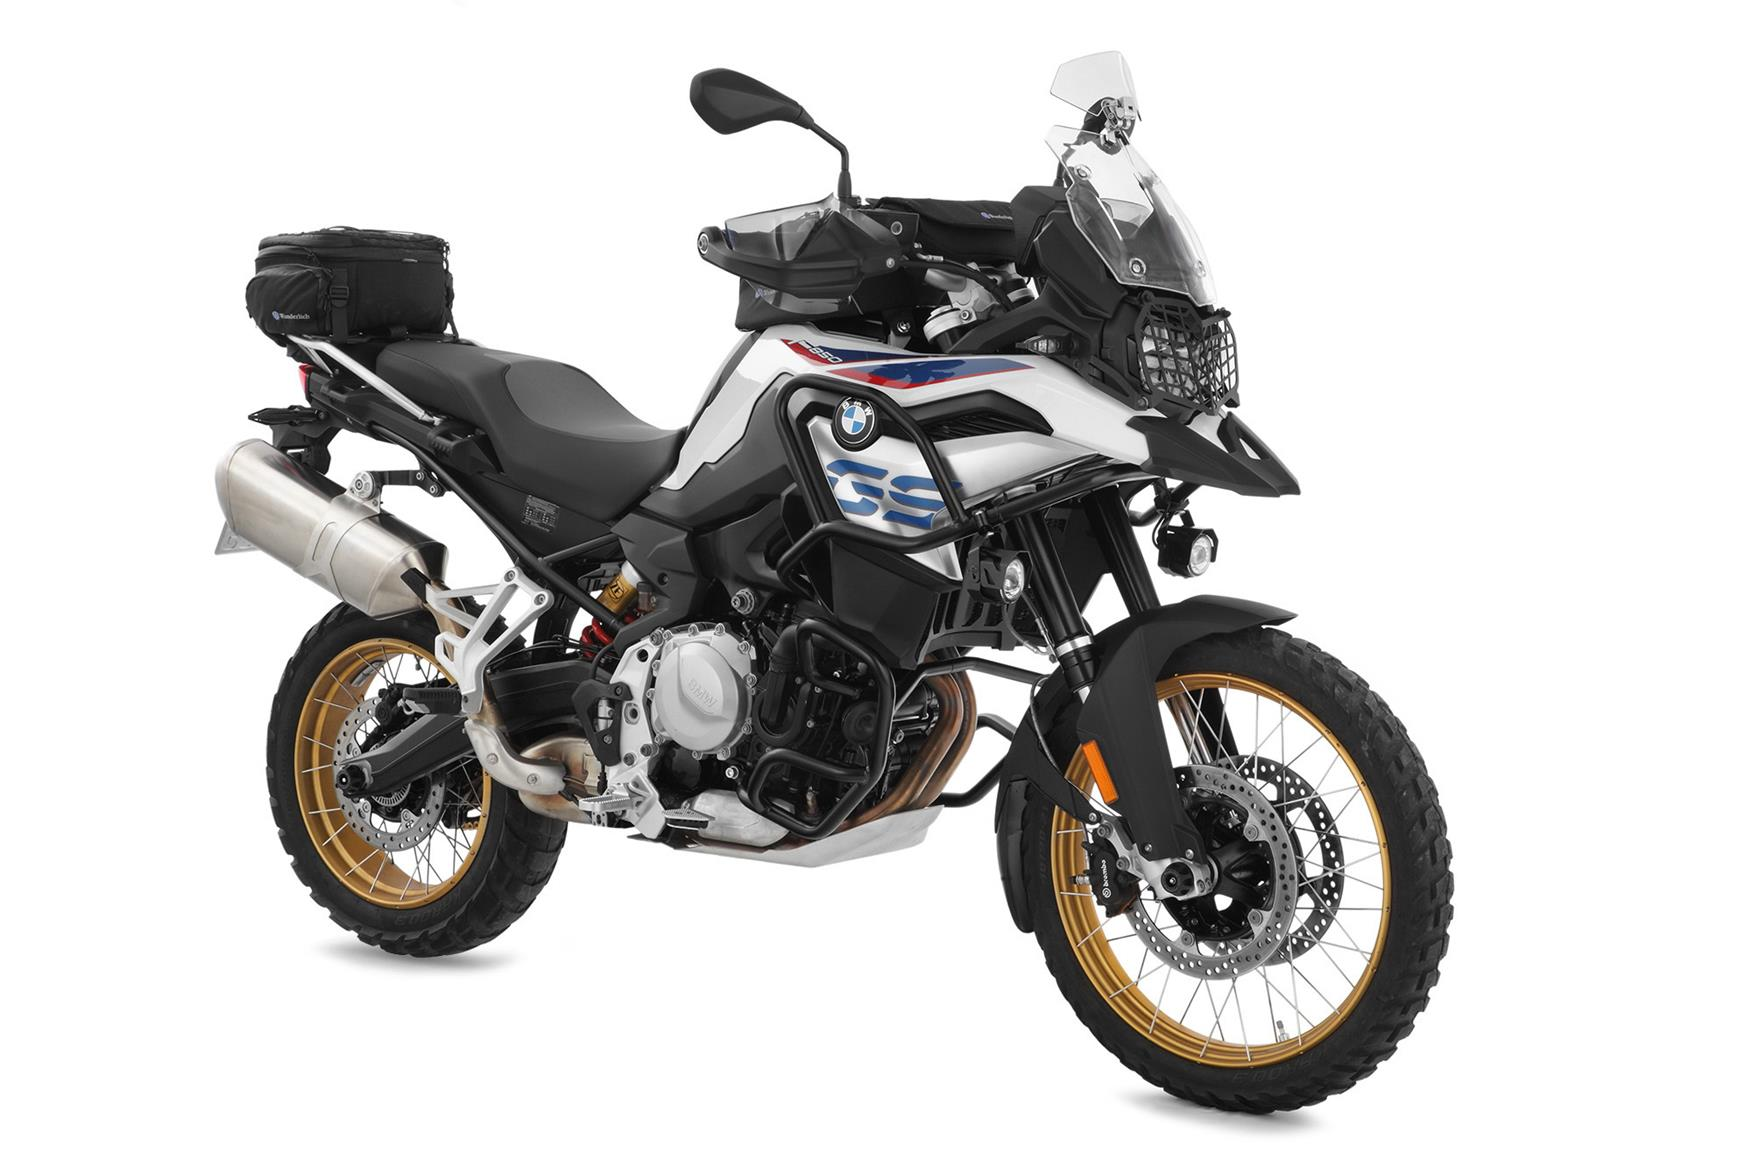 wunderlich launch new accessories for bmw f850gs. Black Bedroom Furniture Sets. Home Design Ideas